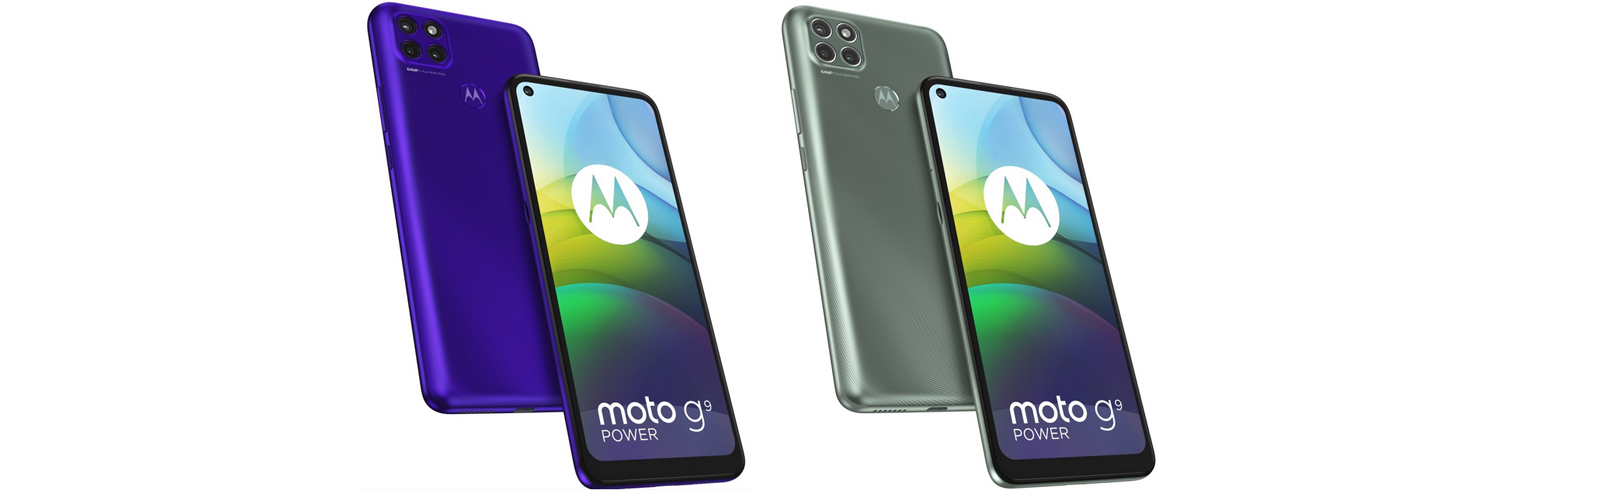 Motorola unveils the Moto G9 Power - specifications and prices